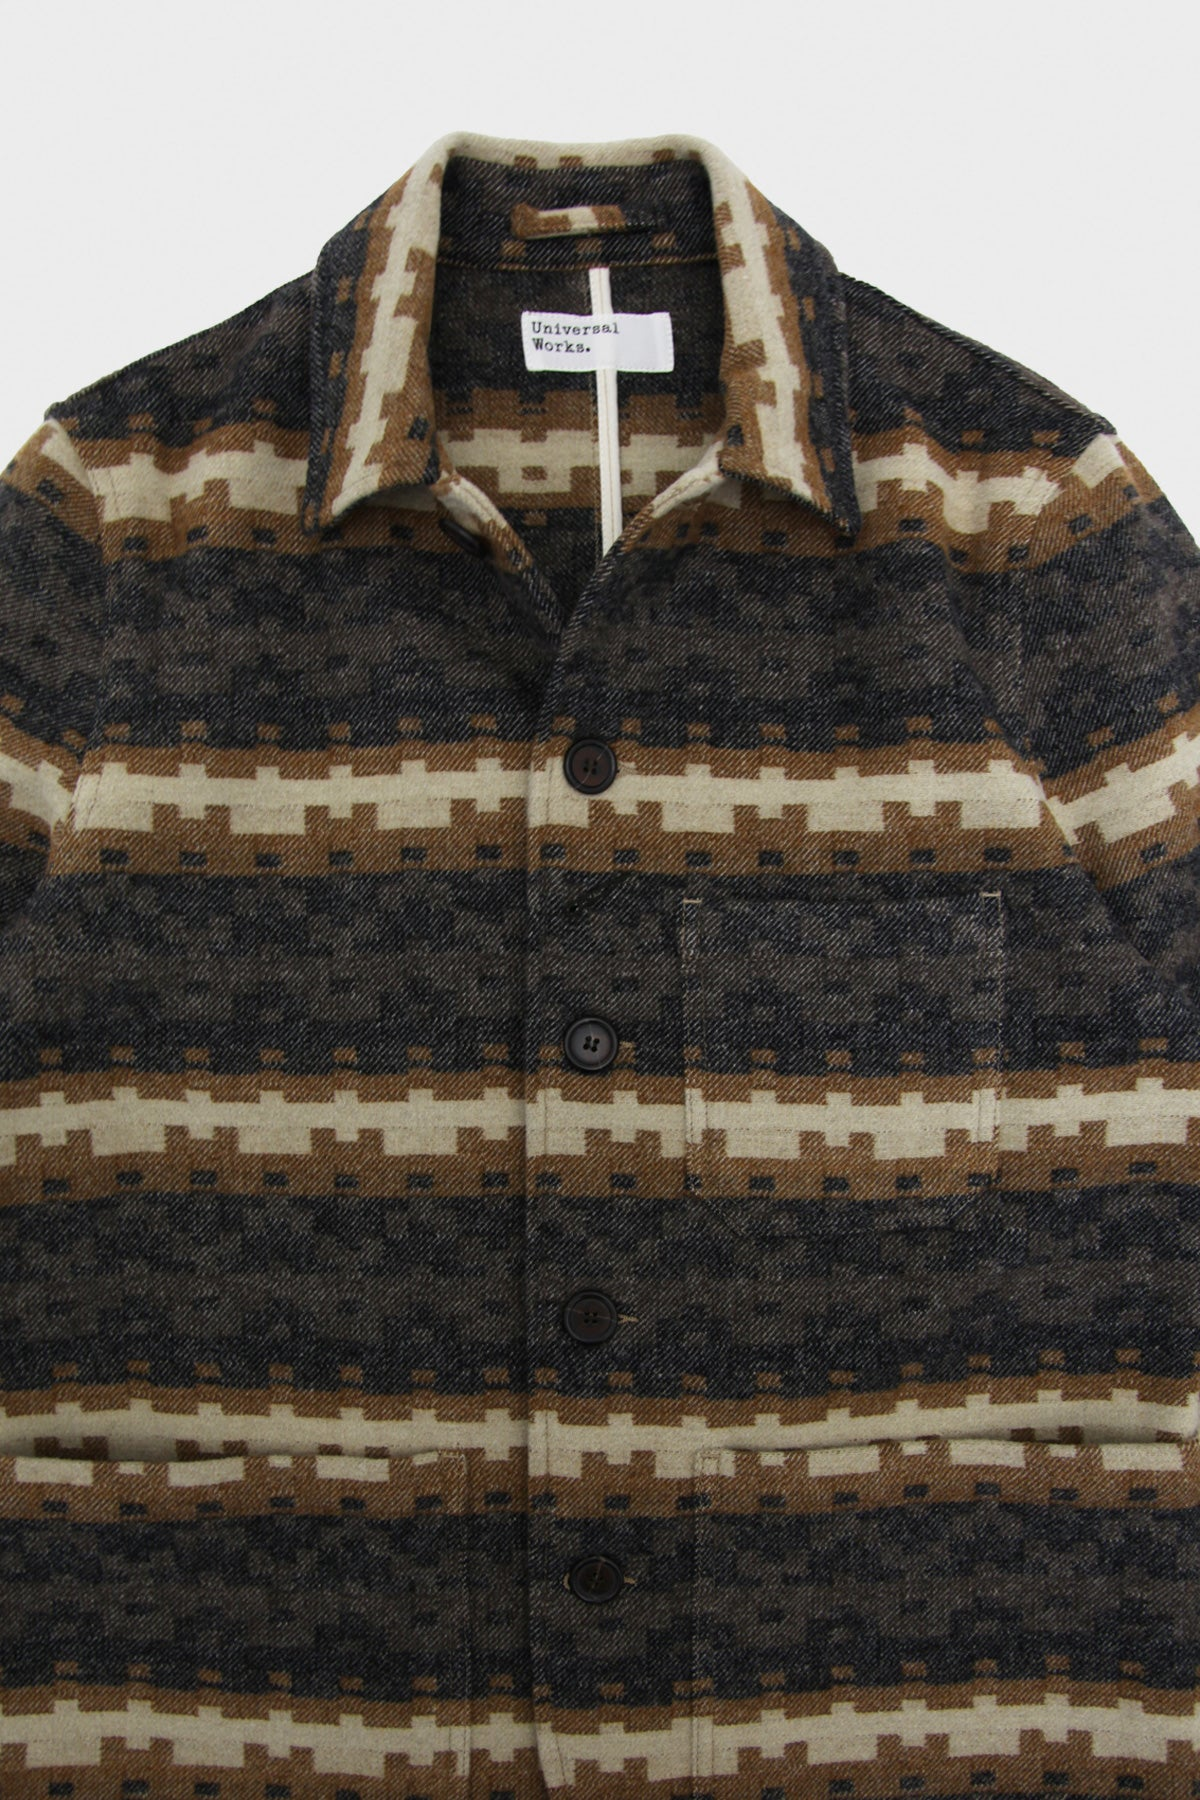 universal works Bakers Jacket - Multi Stripe